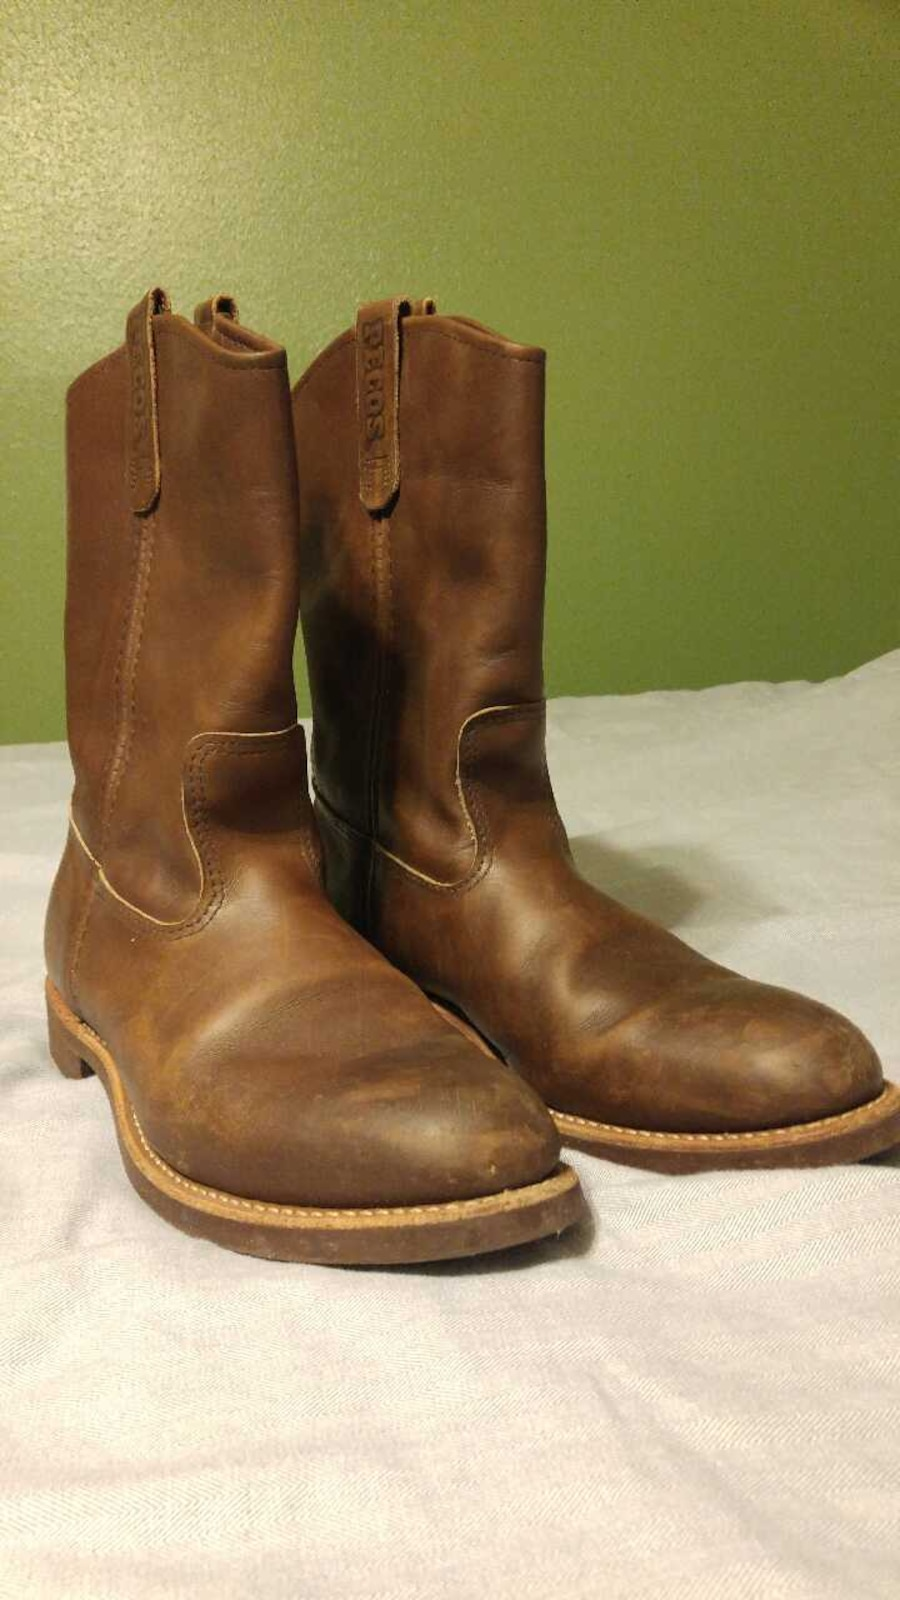 letgo - Red Wing Boots 1178 in Sprinkle, TX